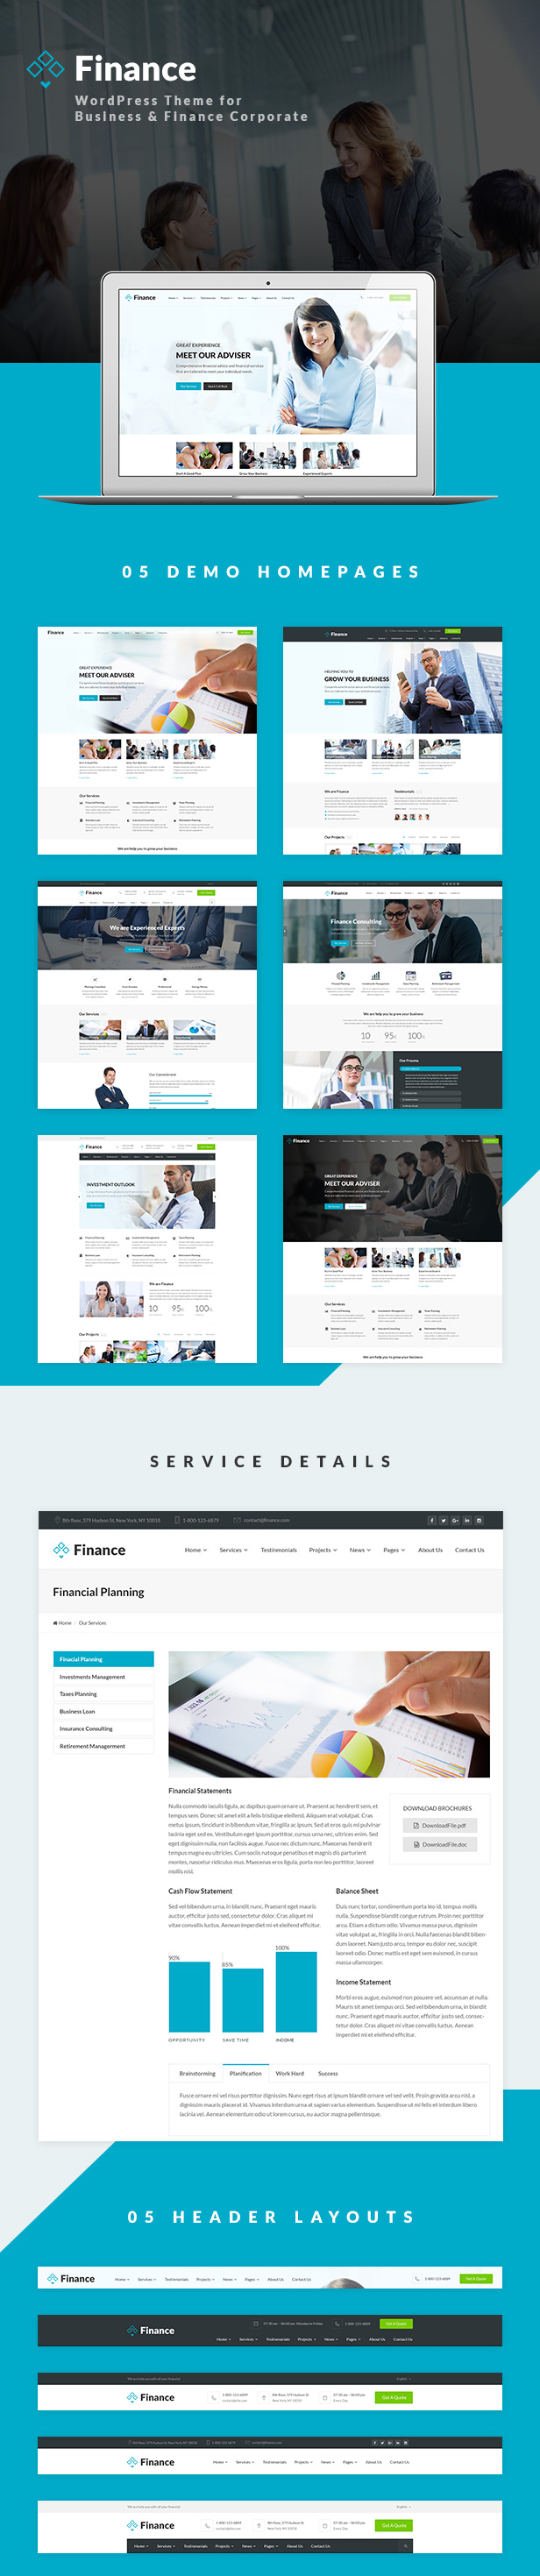 Finance - Business & Financial WordPress Theme